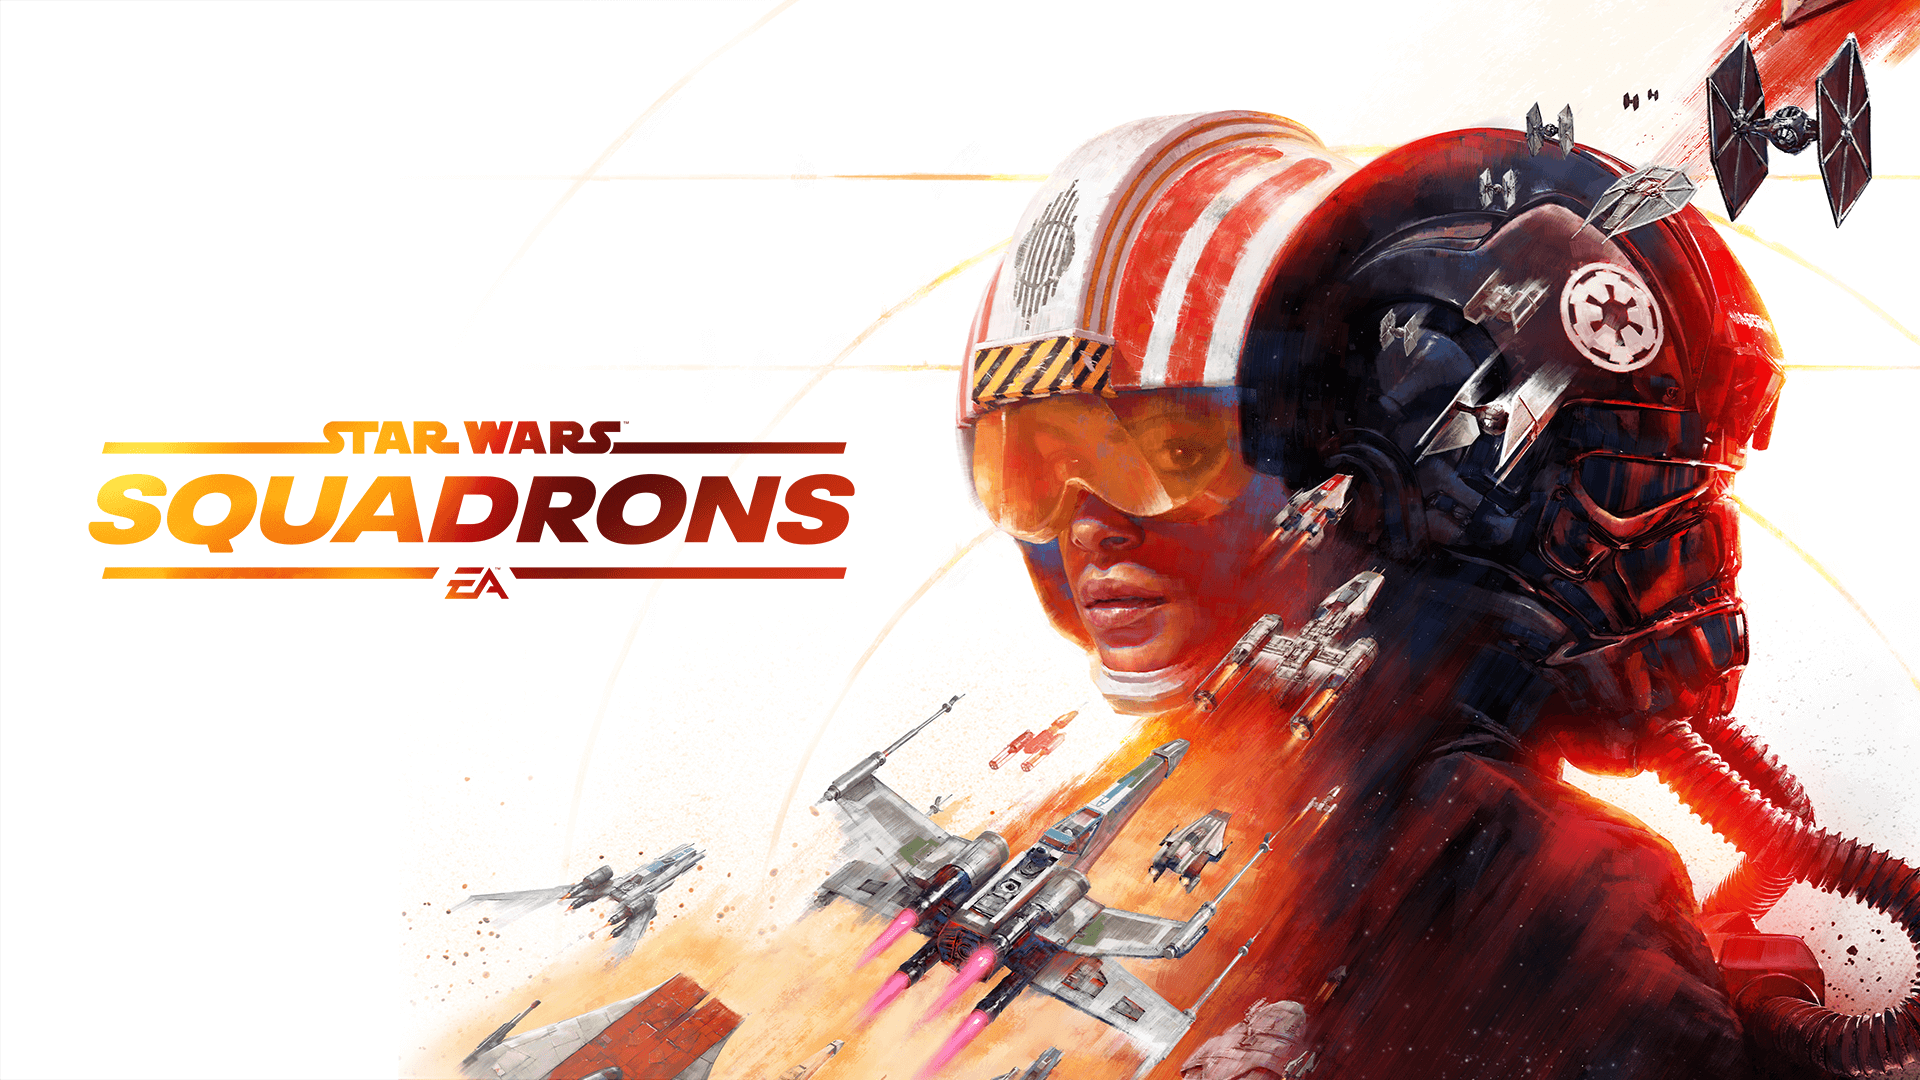 Star Wars: Squadrons DLCs